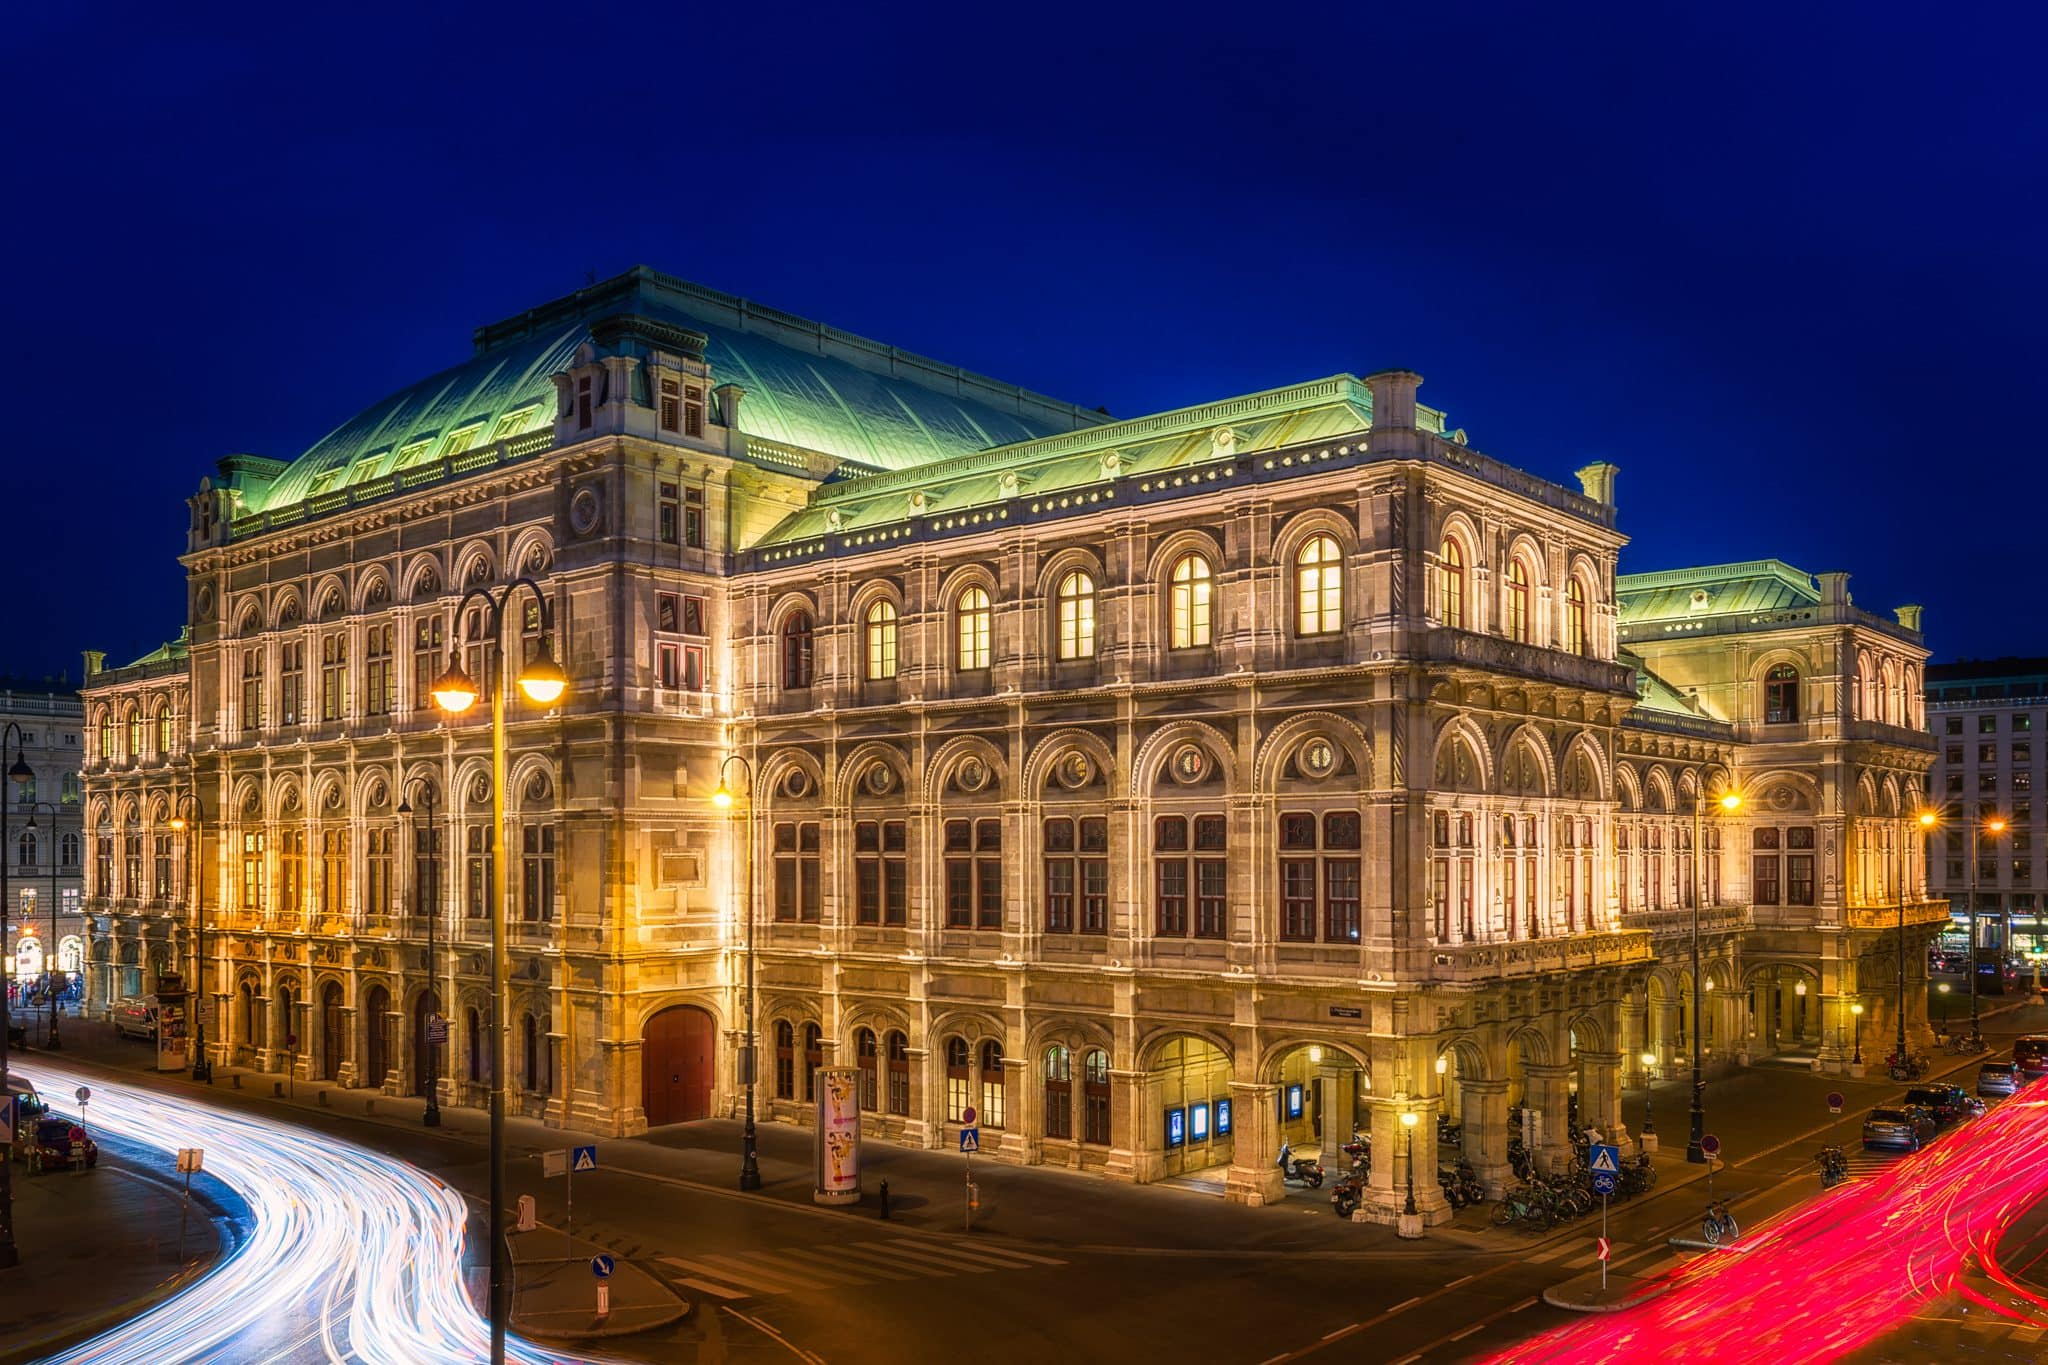 Vienna State Opera – Night photograph, Austria.